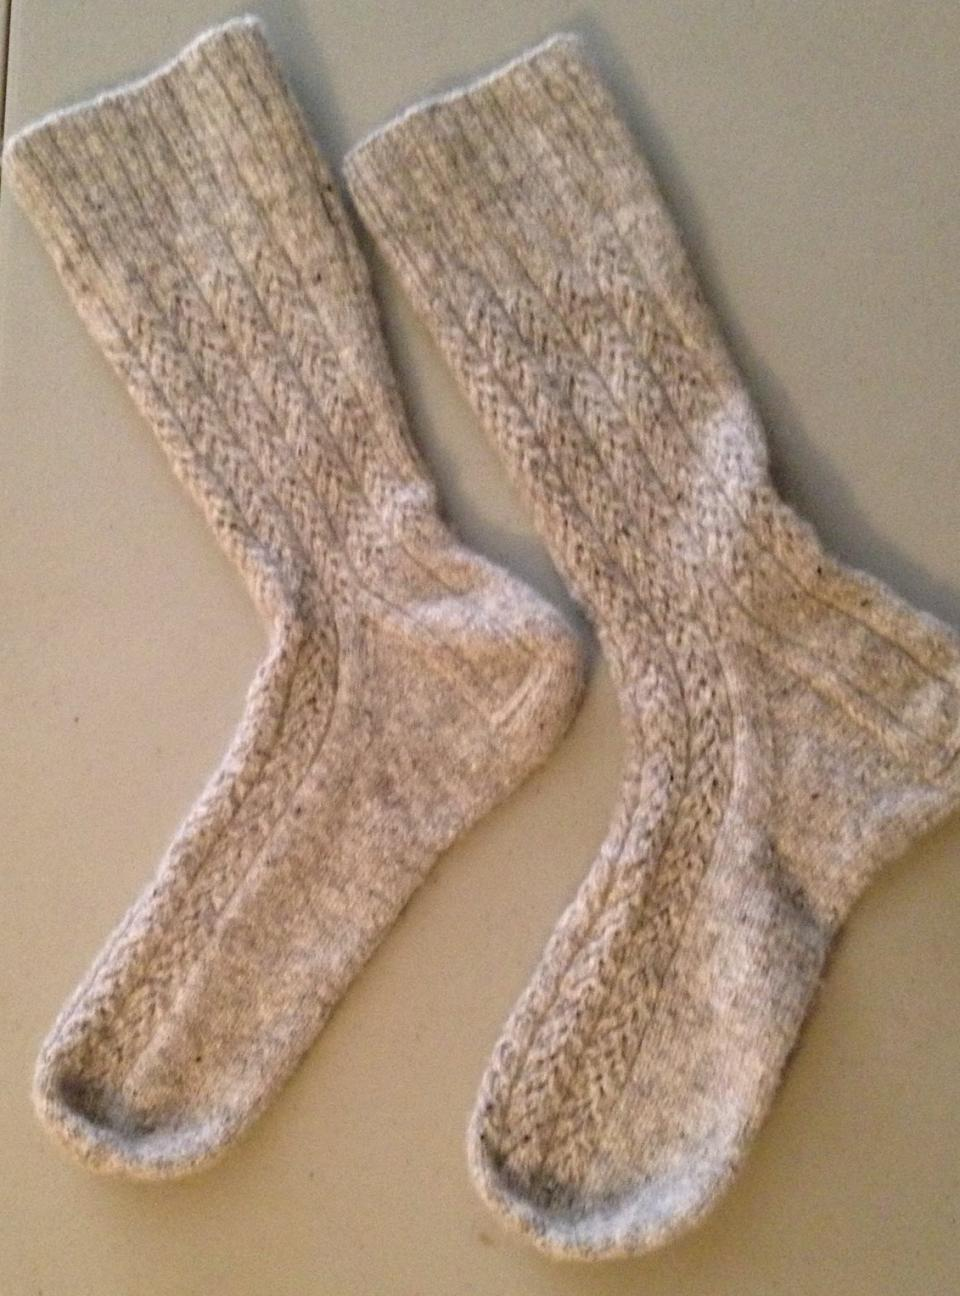 White socks created by Elizabeth Hamm